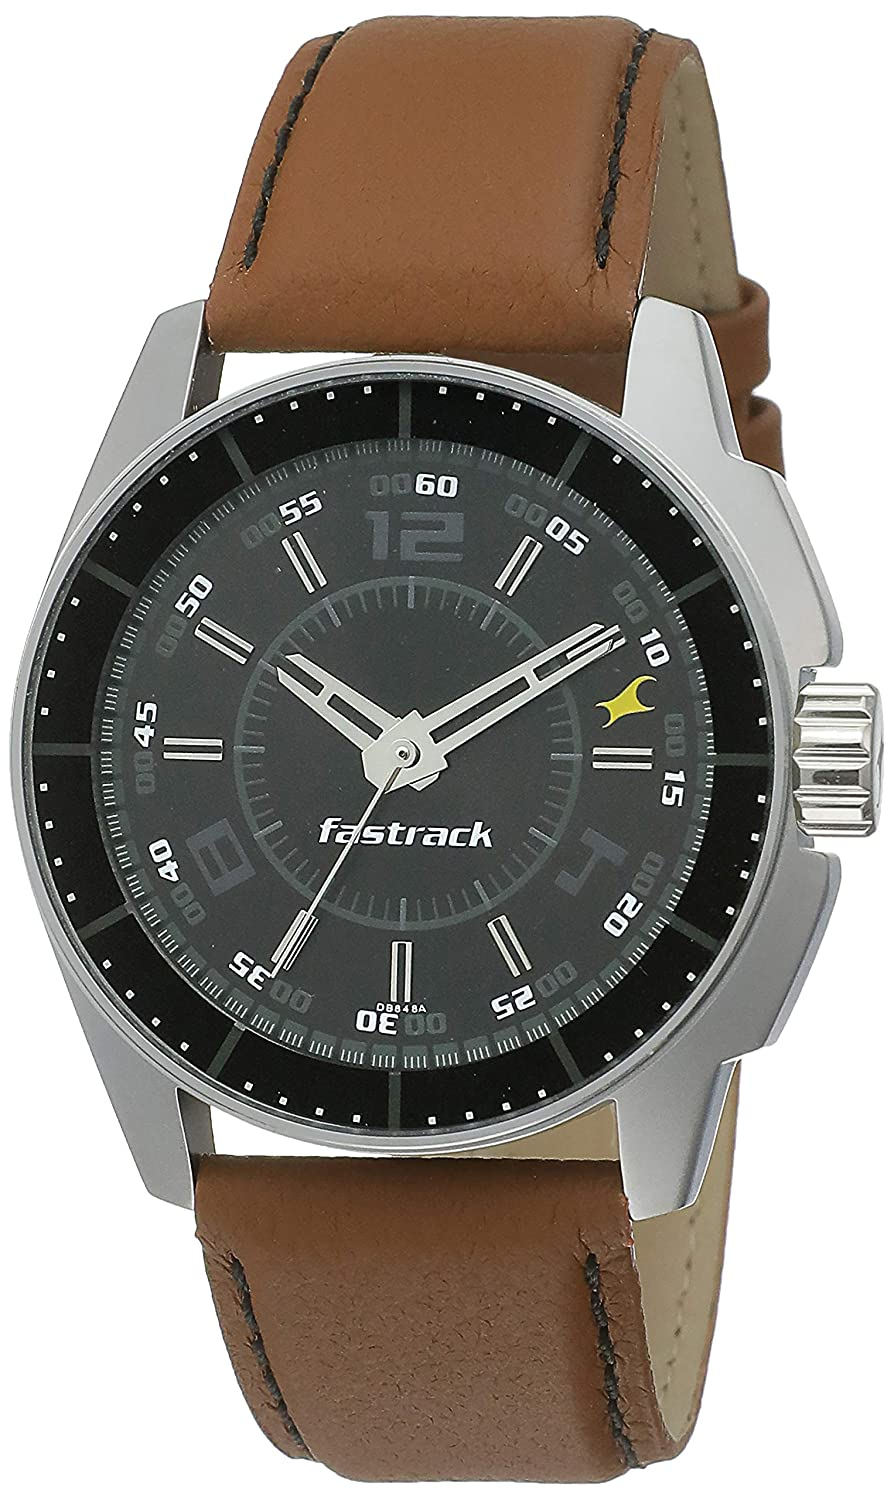 Fastrack Black Magic Analog Black Dial Best Mens Watches Under 5000 in India to buy in 2019 - Reviews & Buyers Guide